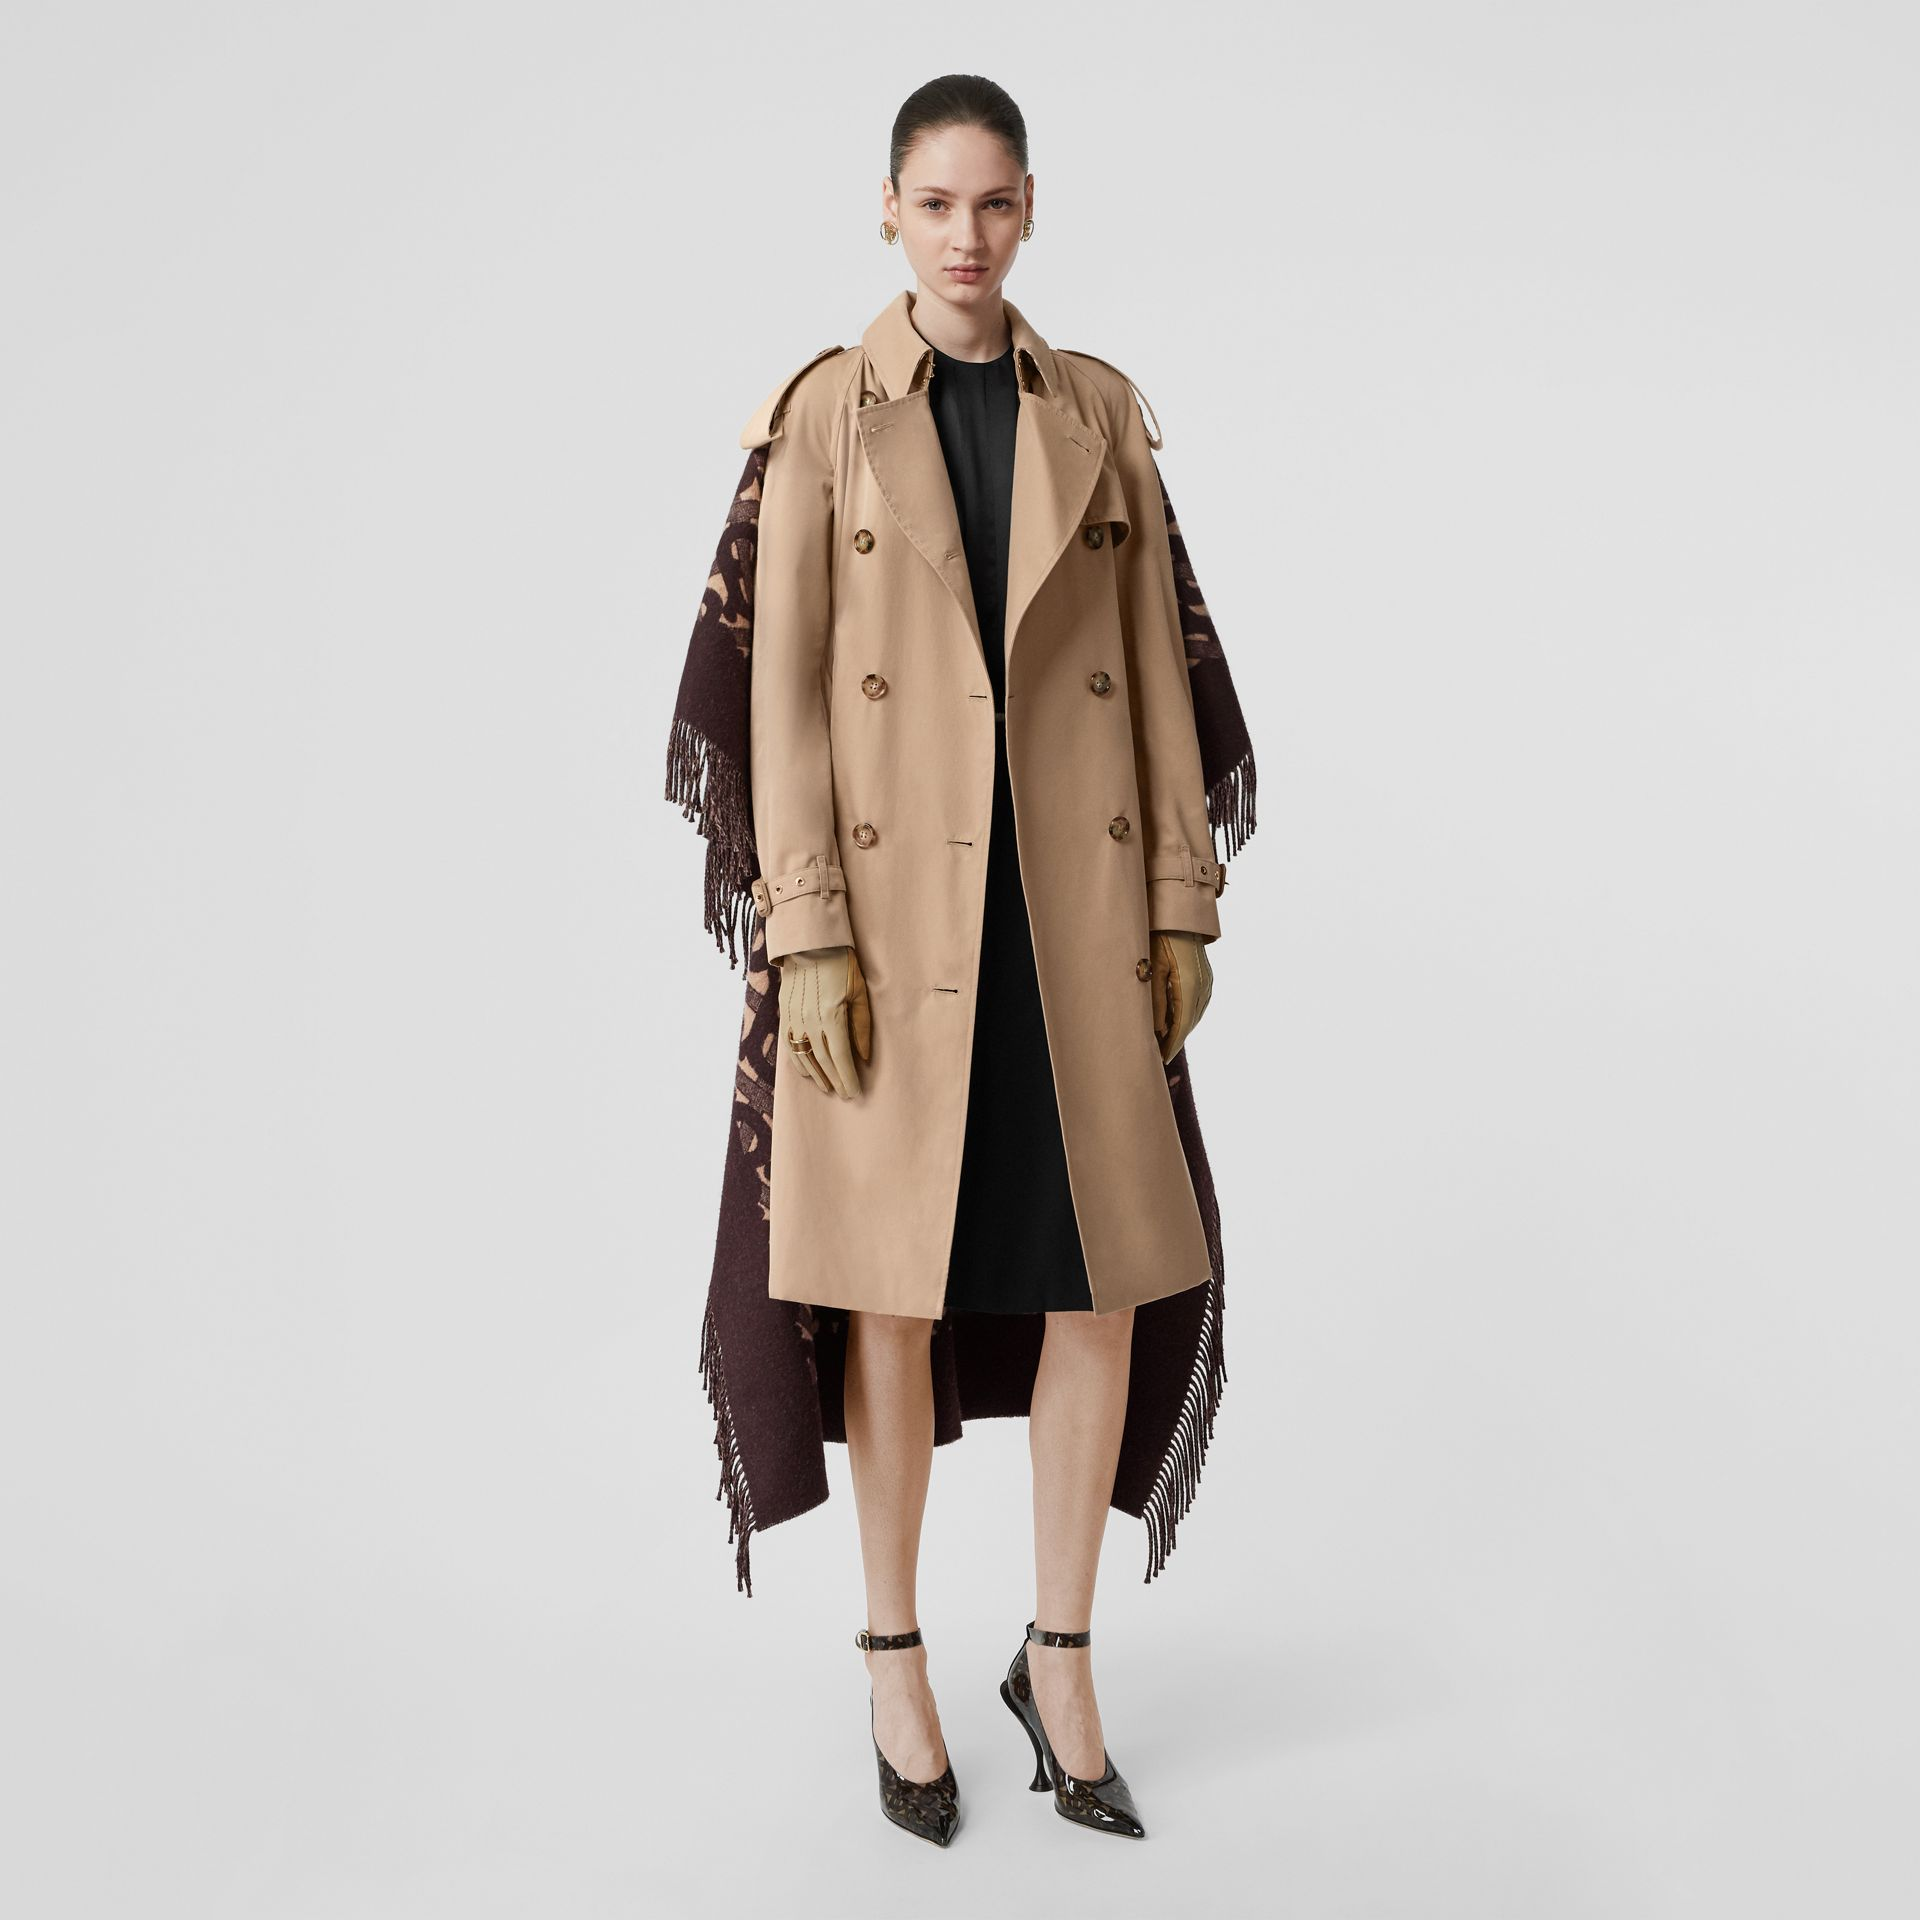 Blanket Detail Cotton Gabardine Trench Coat in Honey - Women | Burberry Australia - gallery image 7